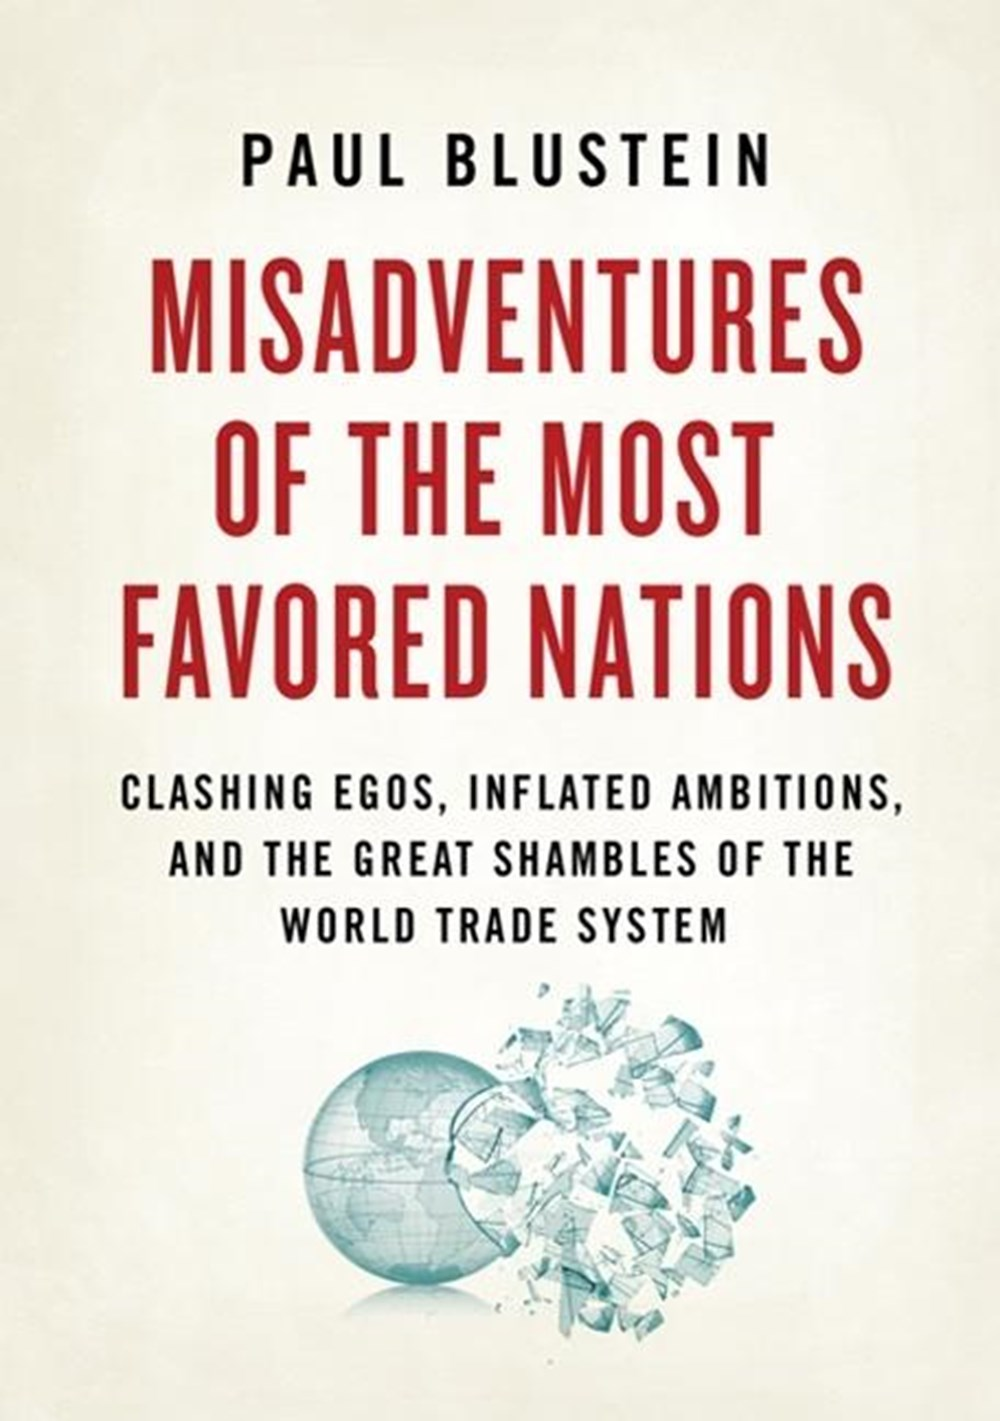 Misadventures of the Most Favored Nations Clashing Egos, Inflated Ambitions, and the Great Shambles